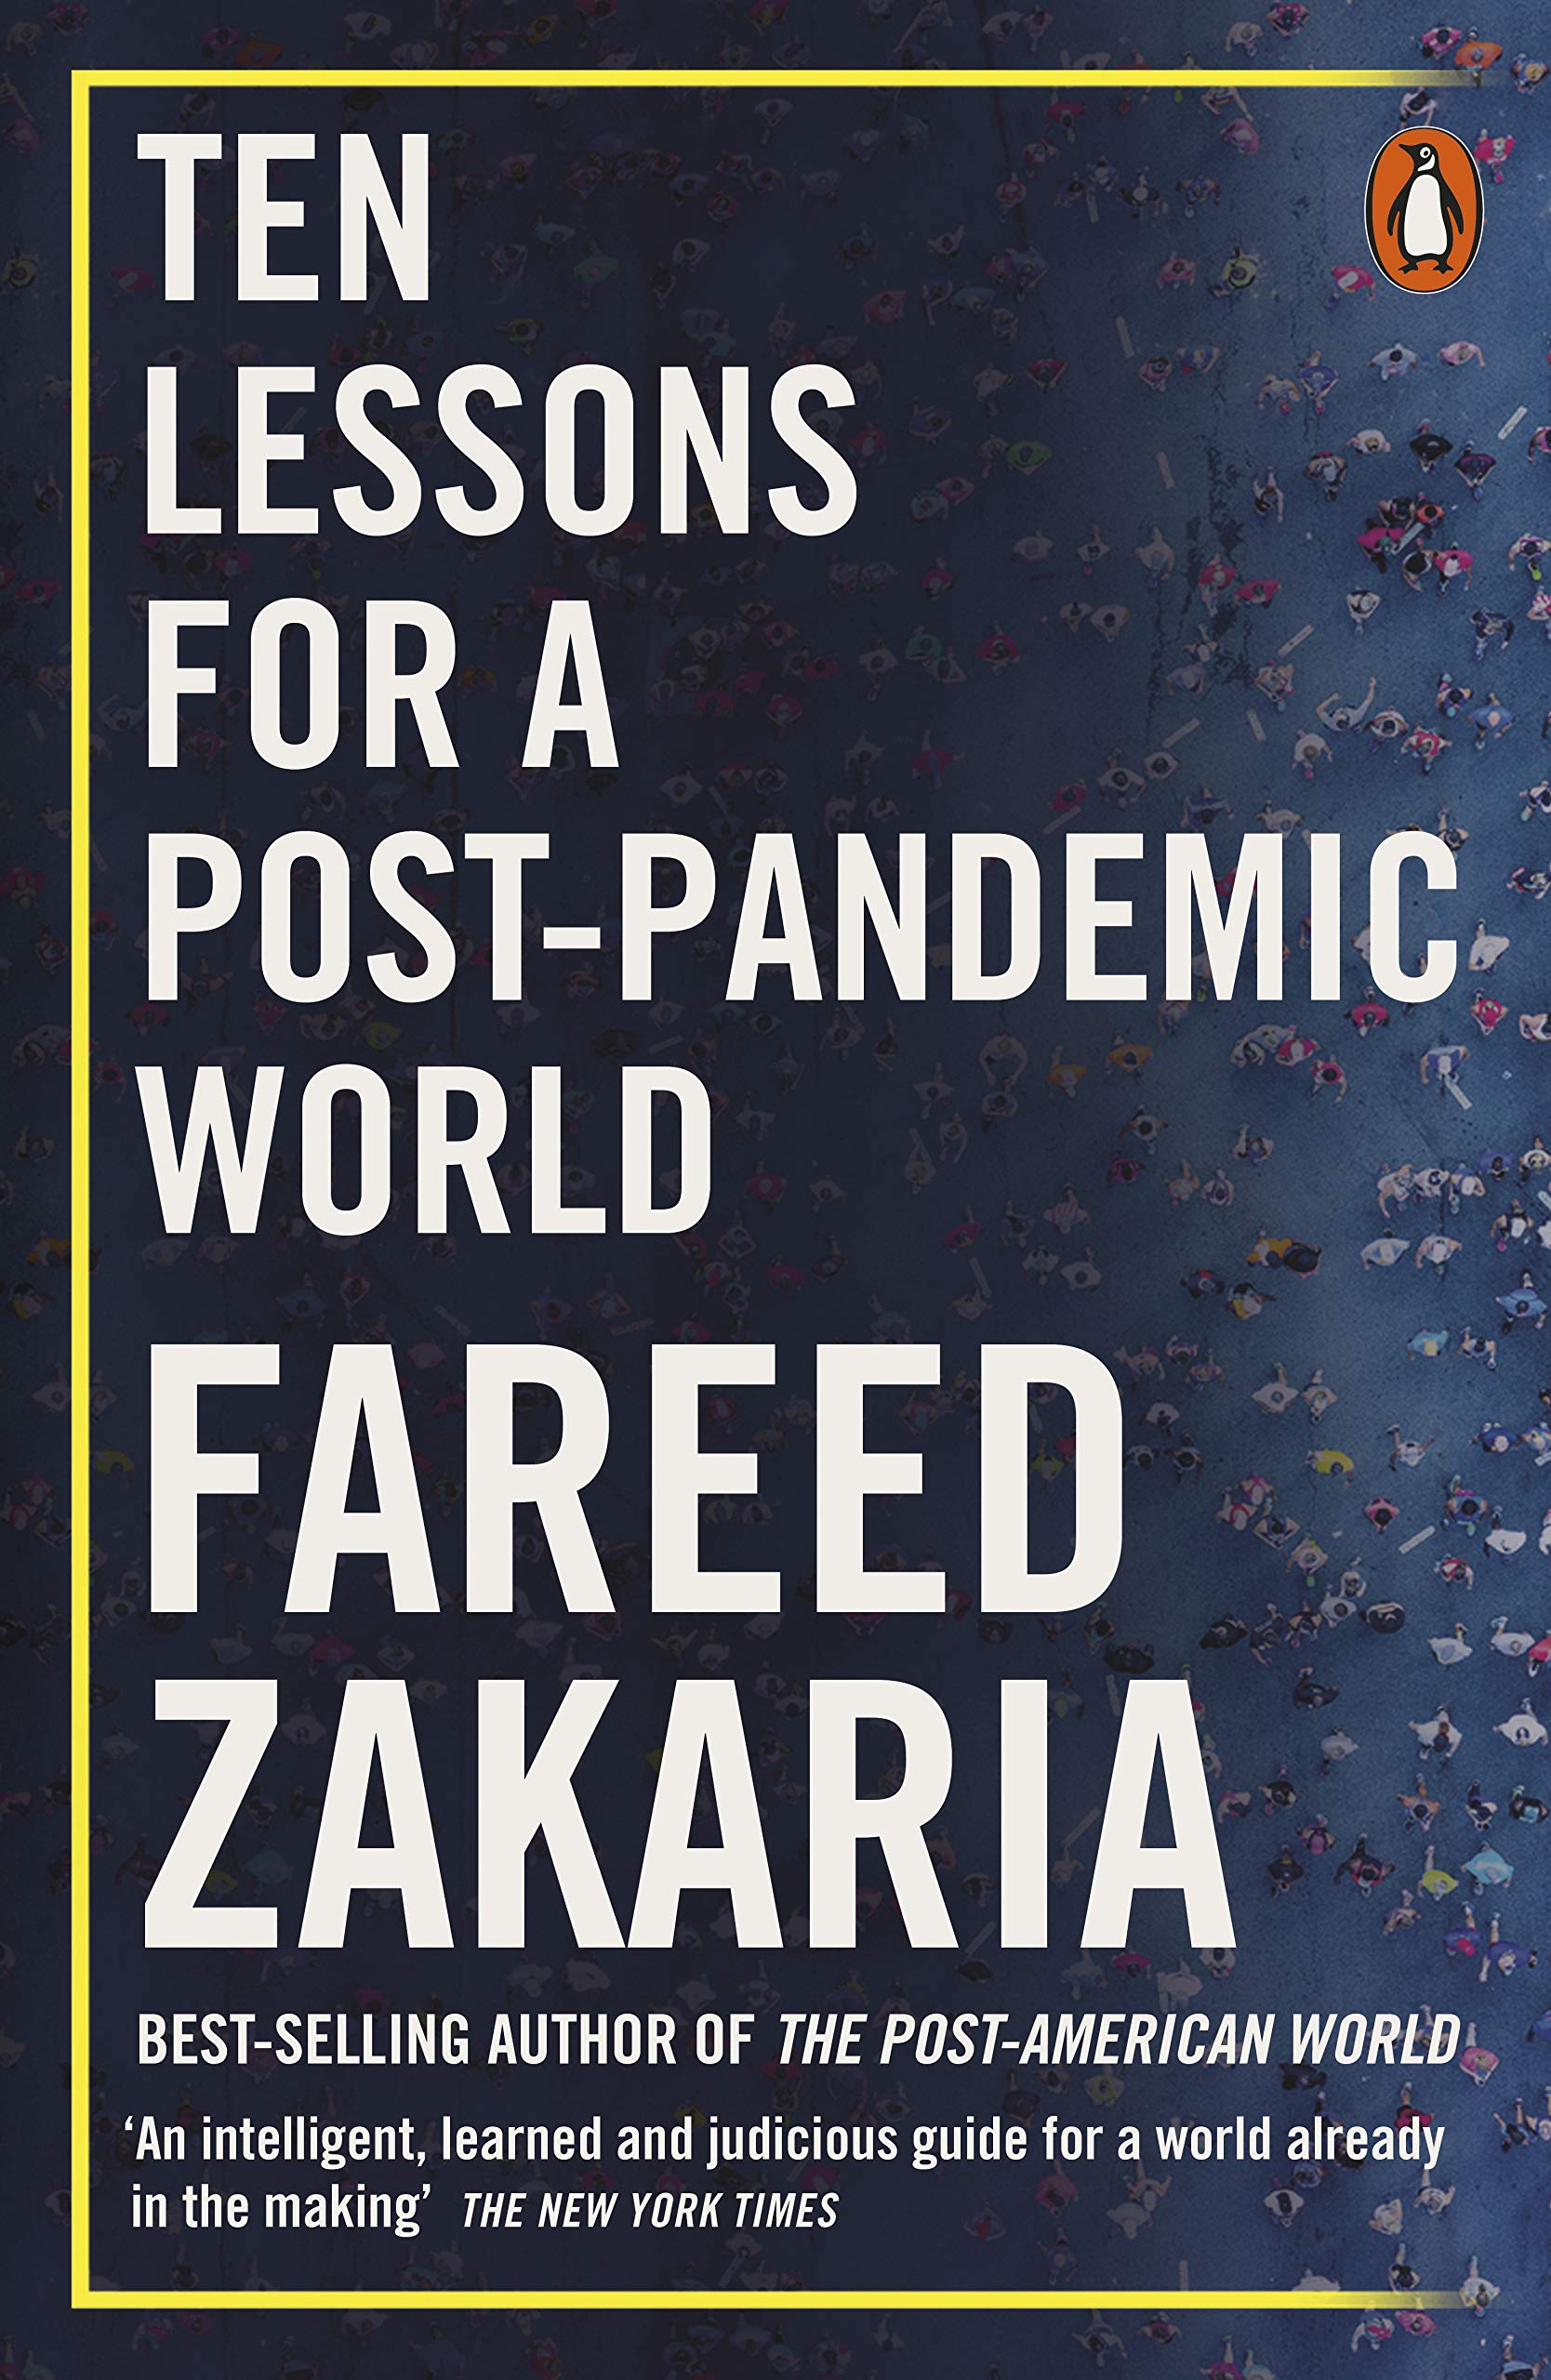 Ten Lessons for a Post-Pandemic World - Zakaria Fareed - 9780141995625